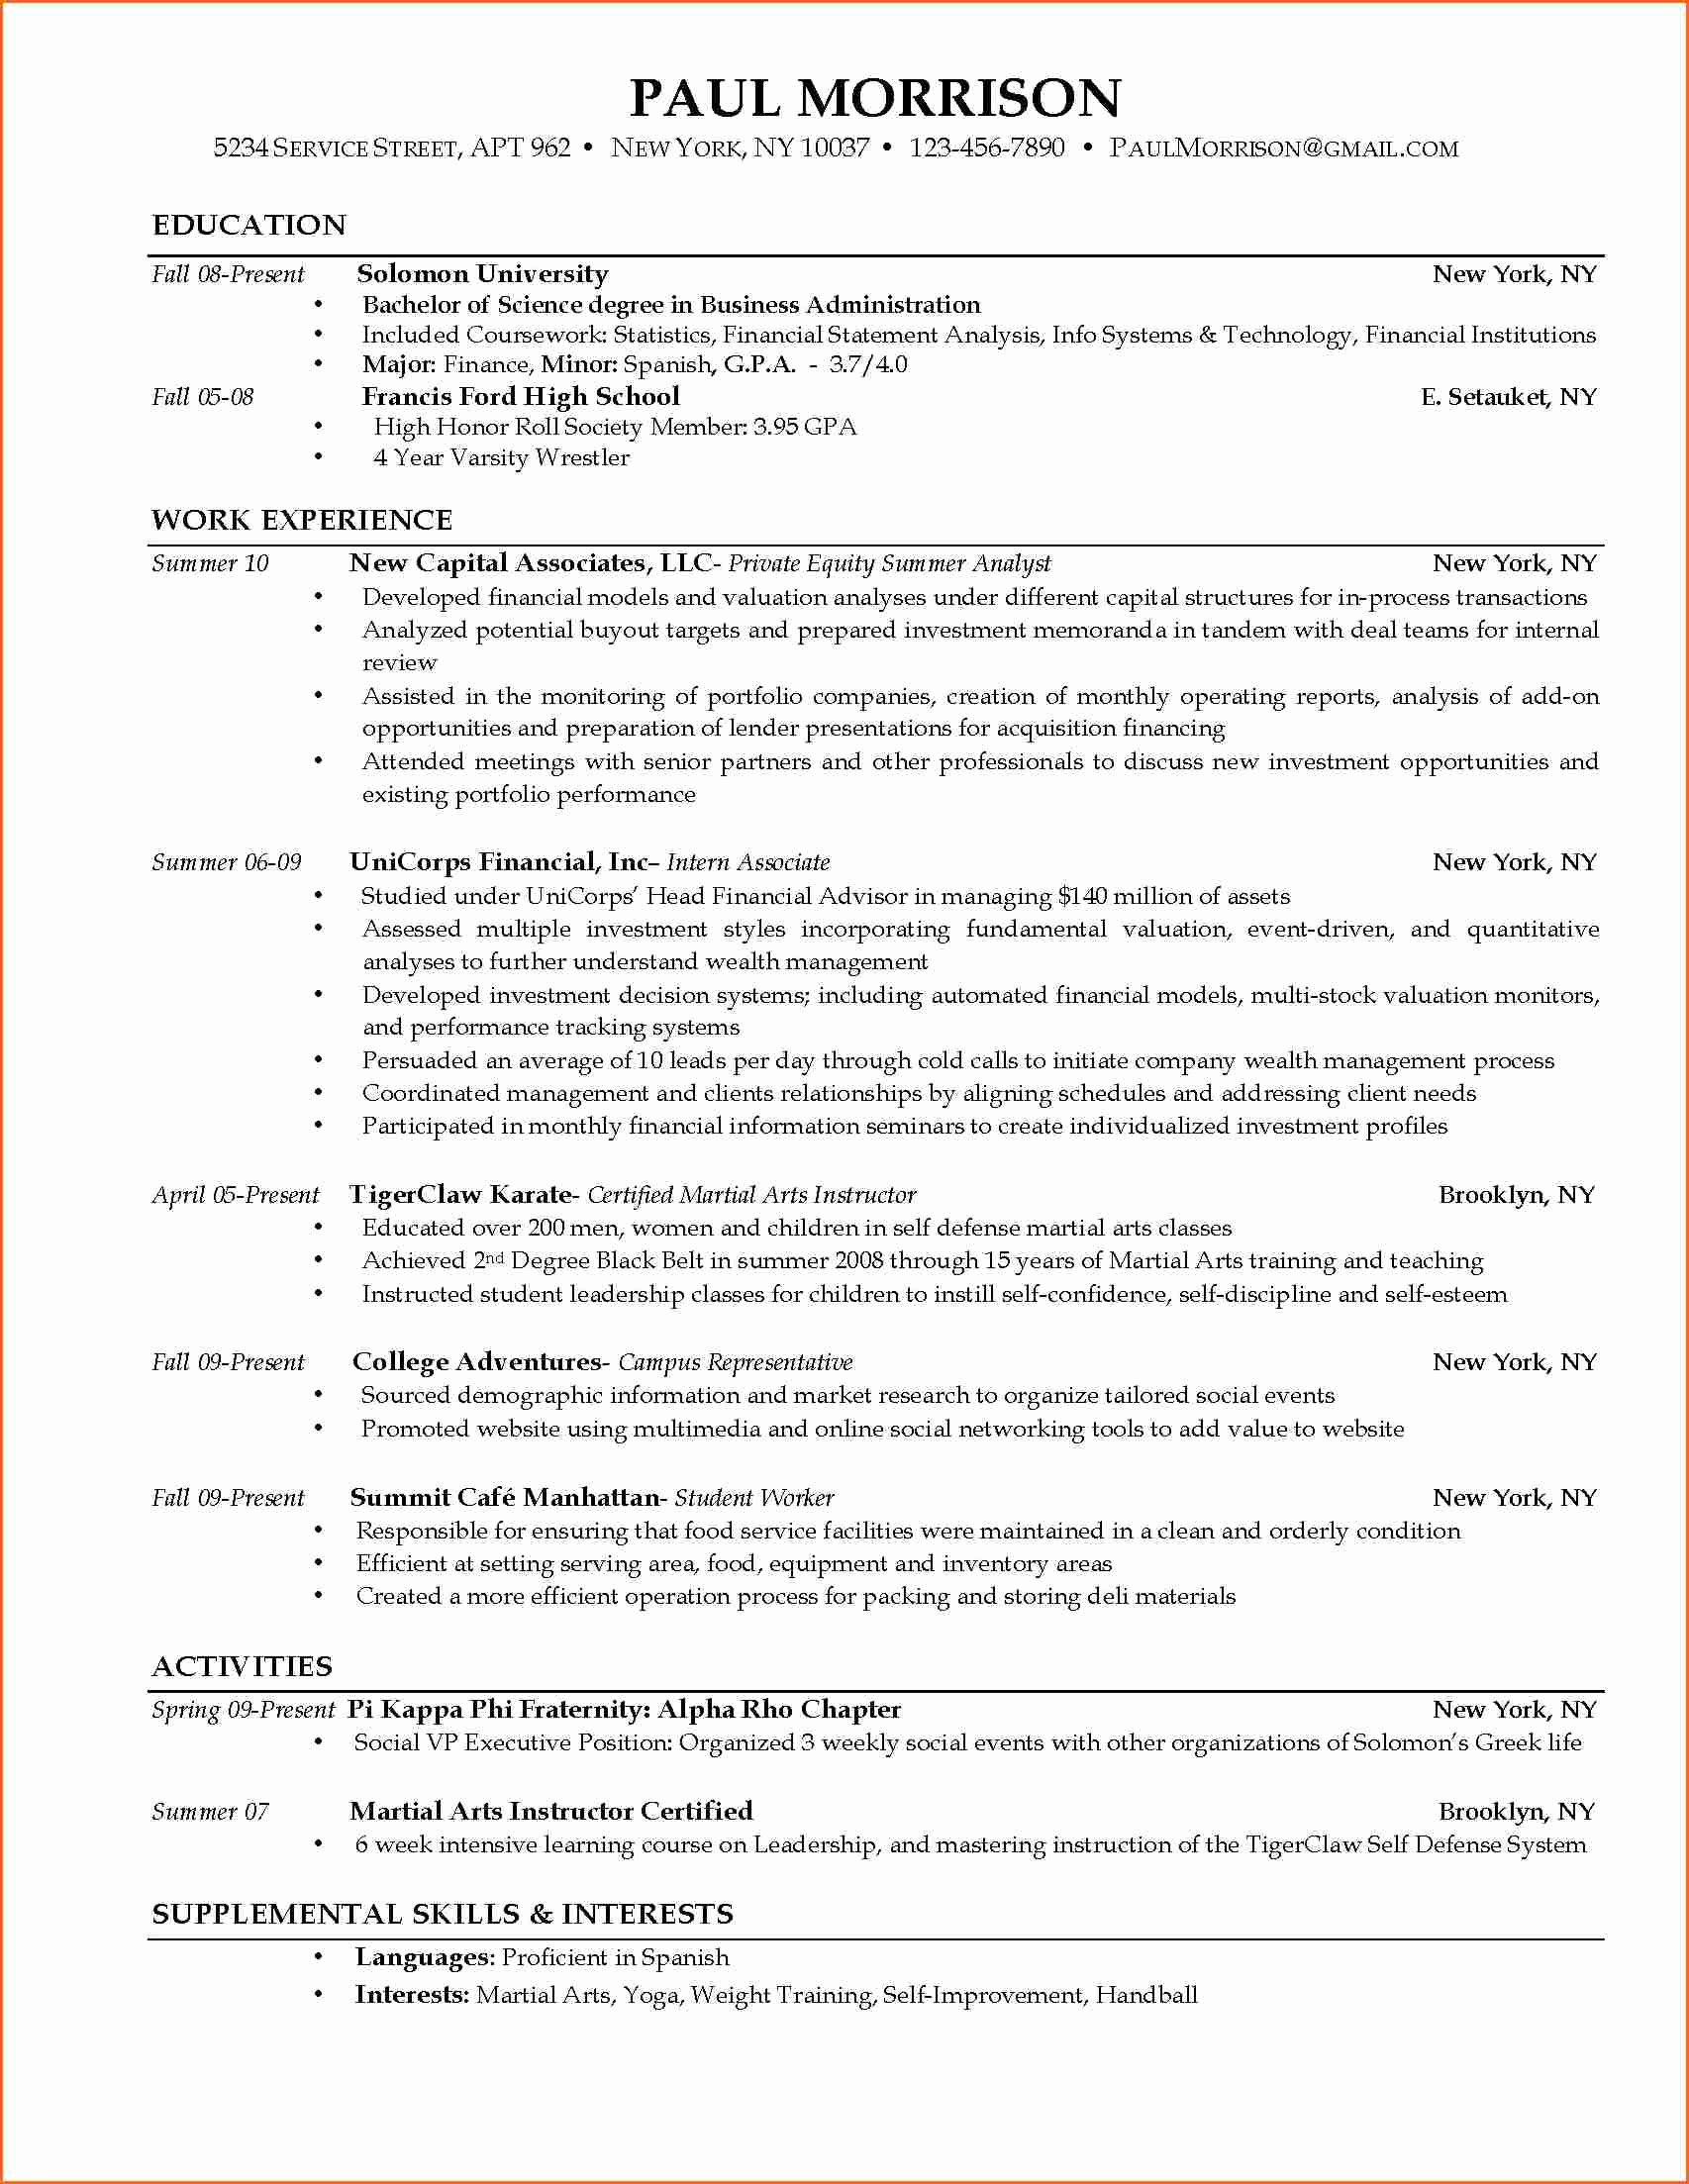 Resume Template College Student Unique Current College Student Resume